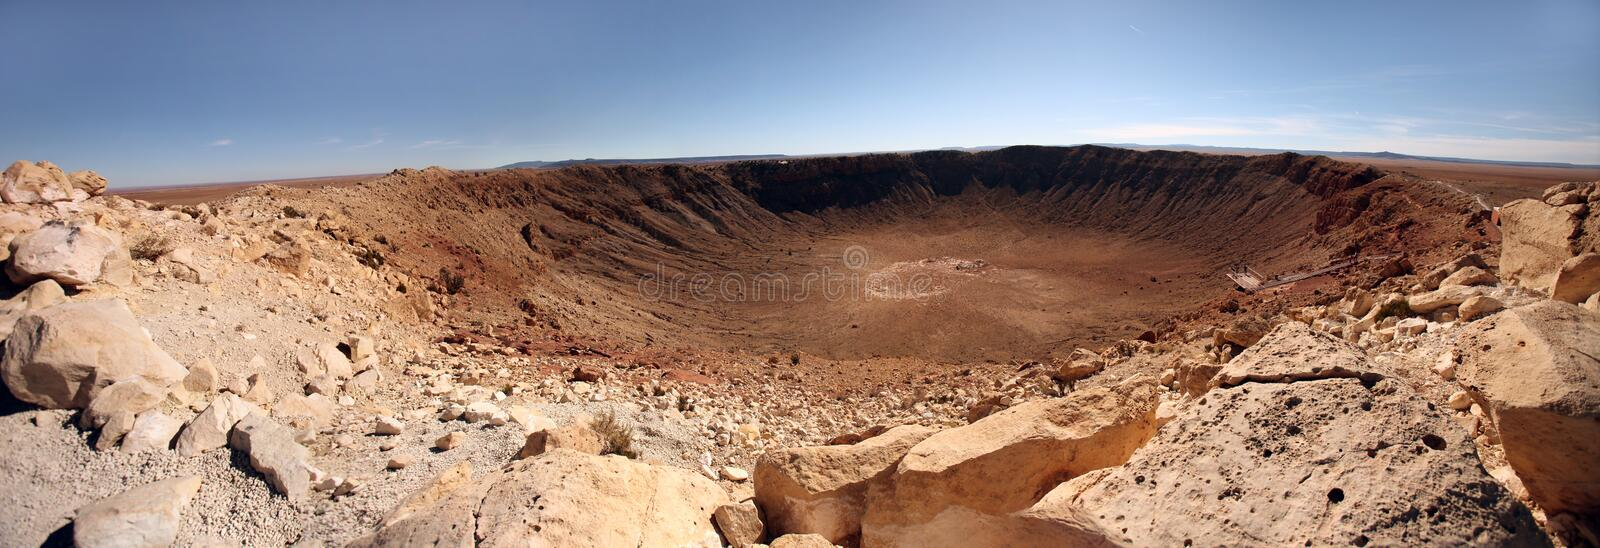 Desert Landscape With Crater stock photo